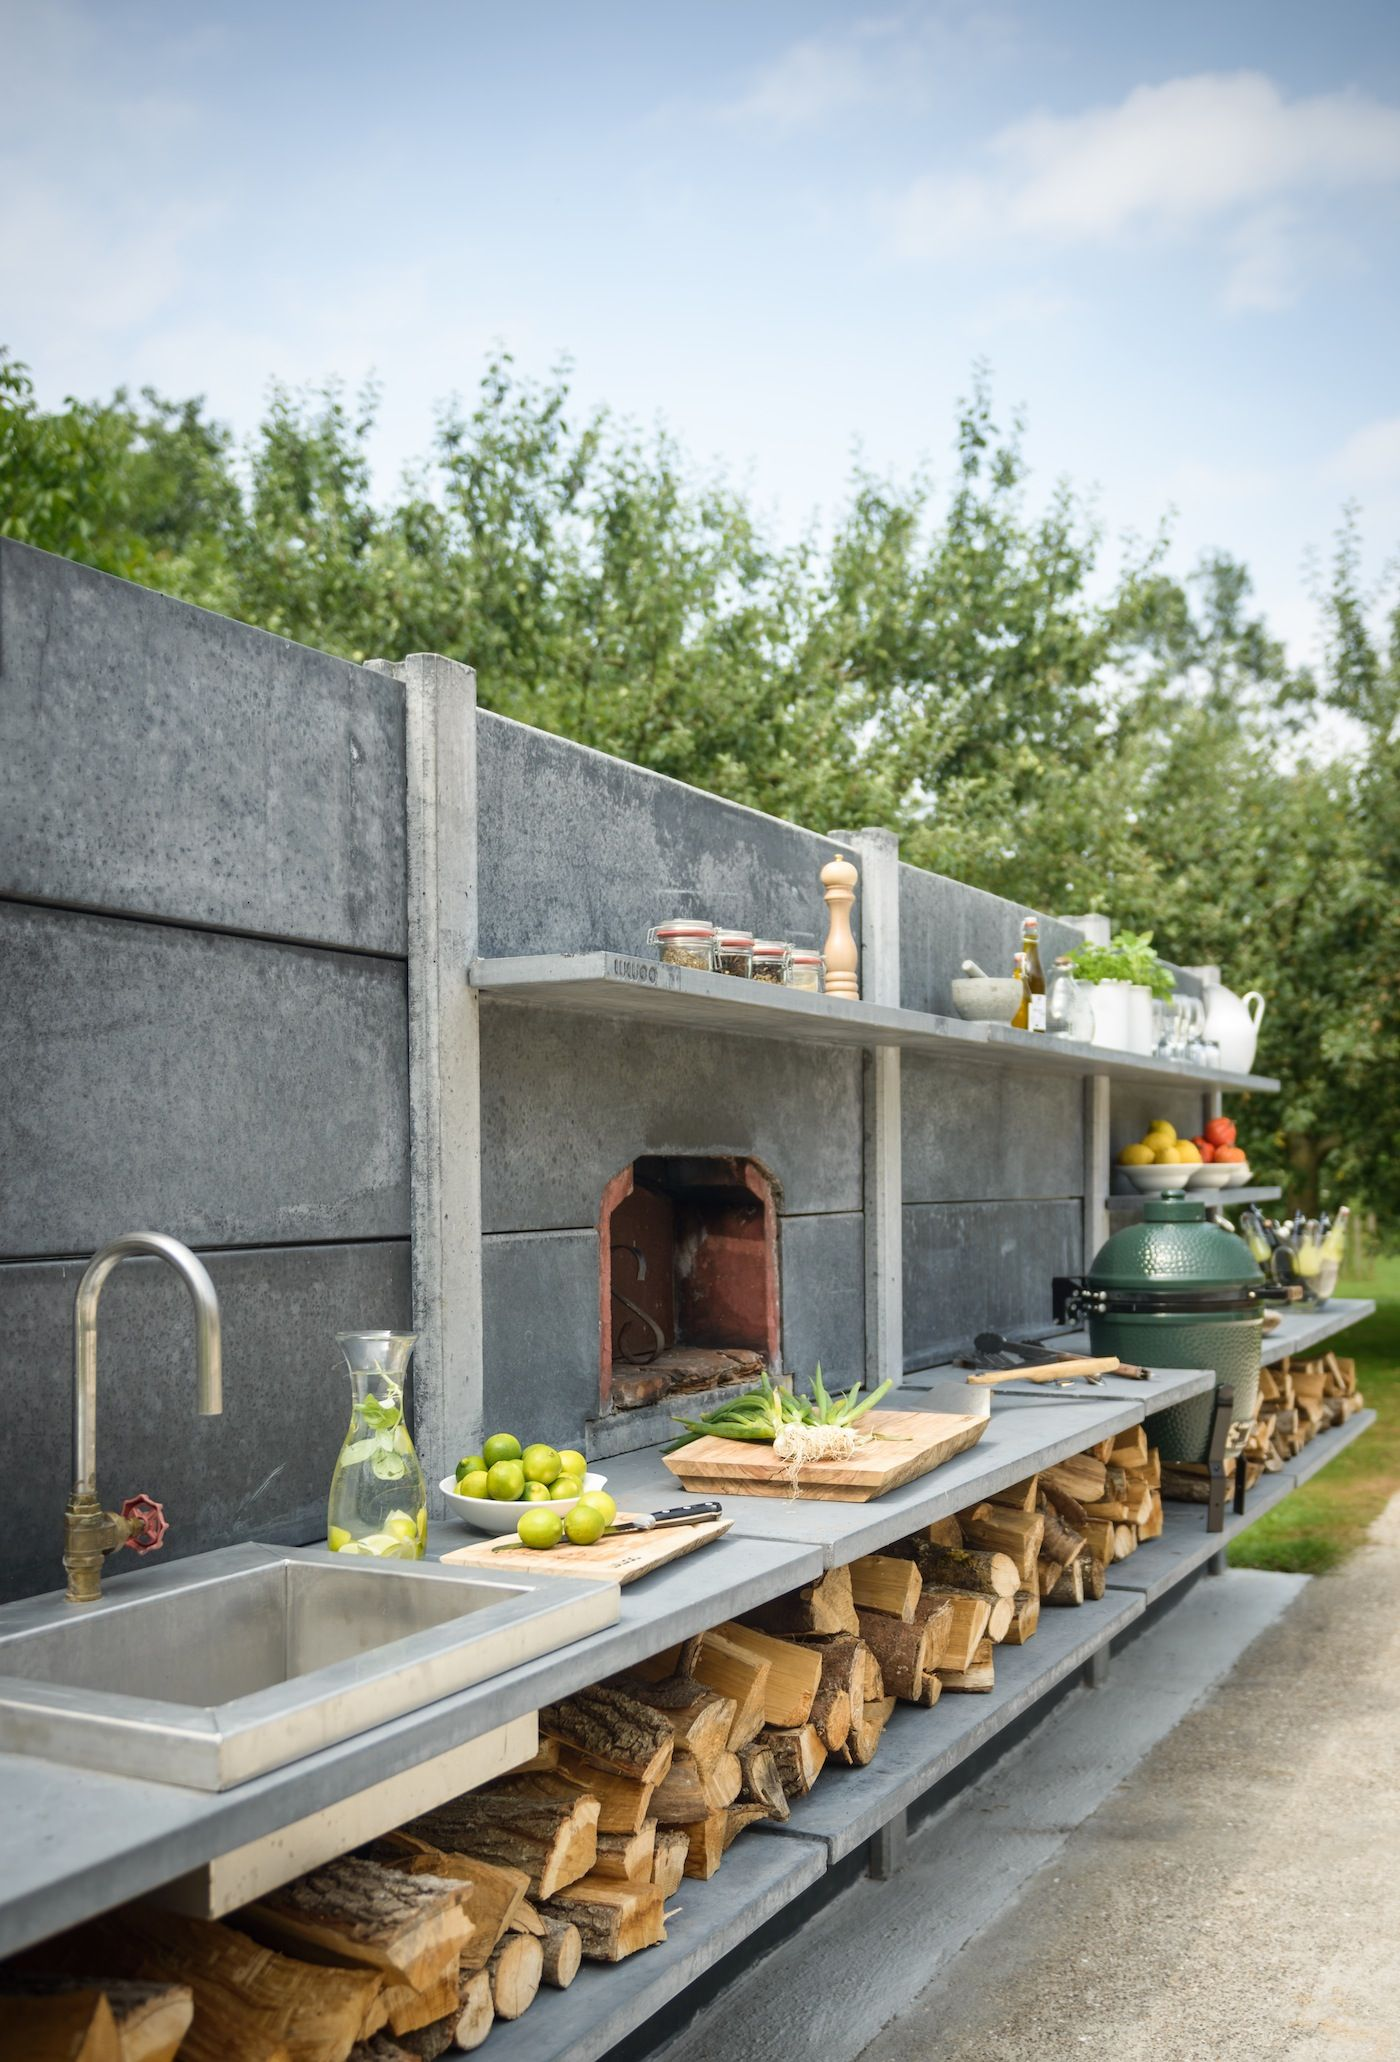 Keuken In De Tuin Wwoo Outdoor Kitchen In 2019 Garden Glory Pinterest Keuken